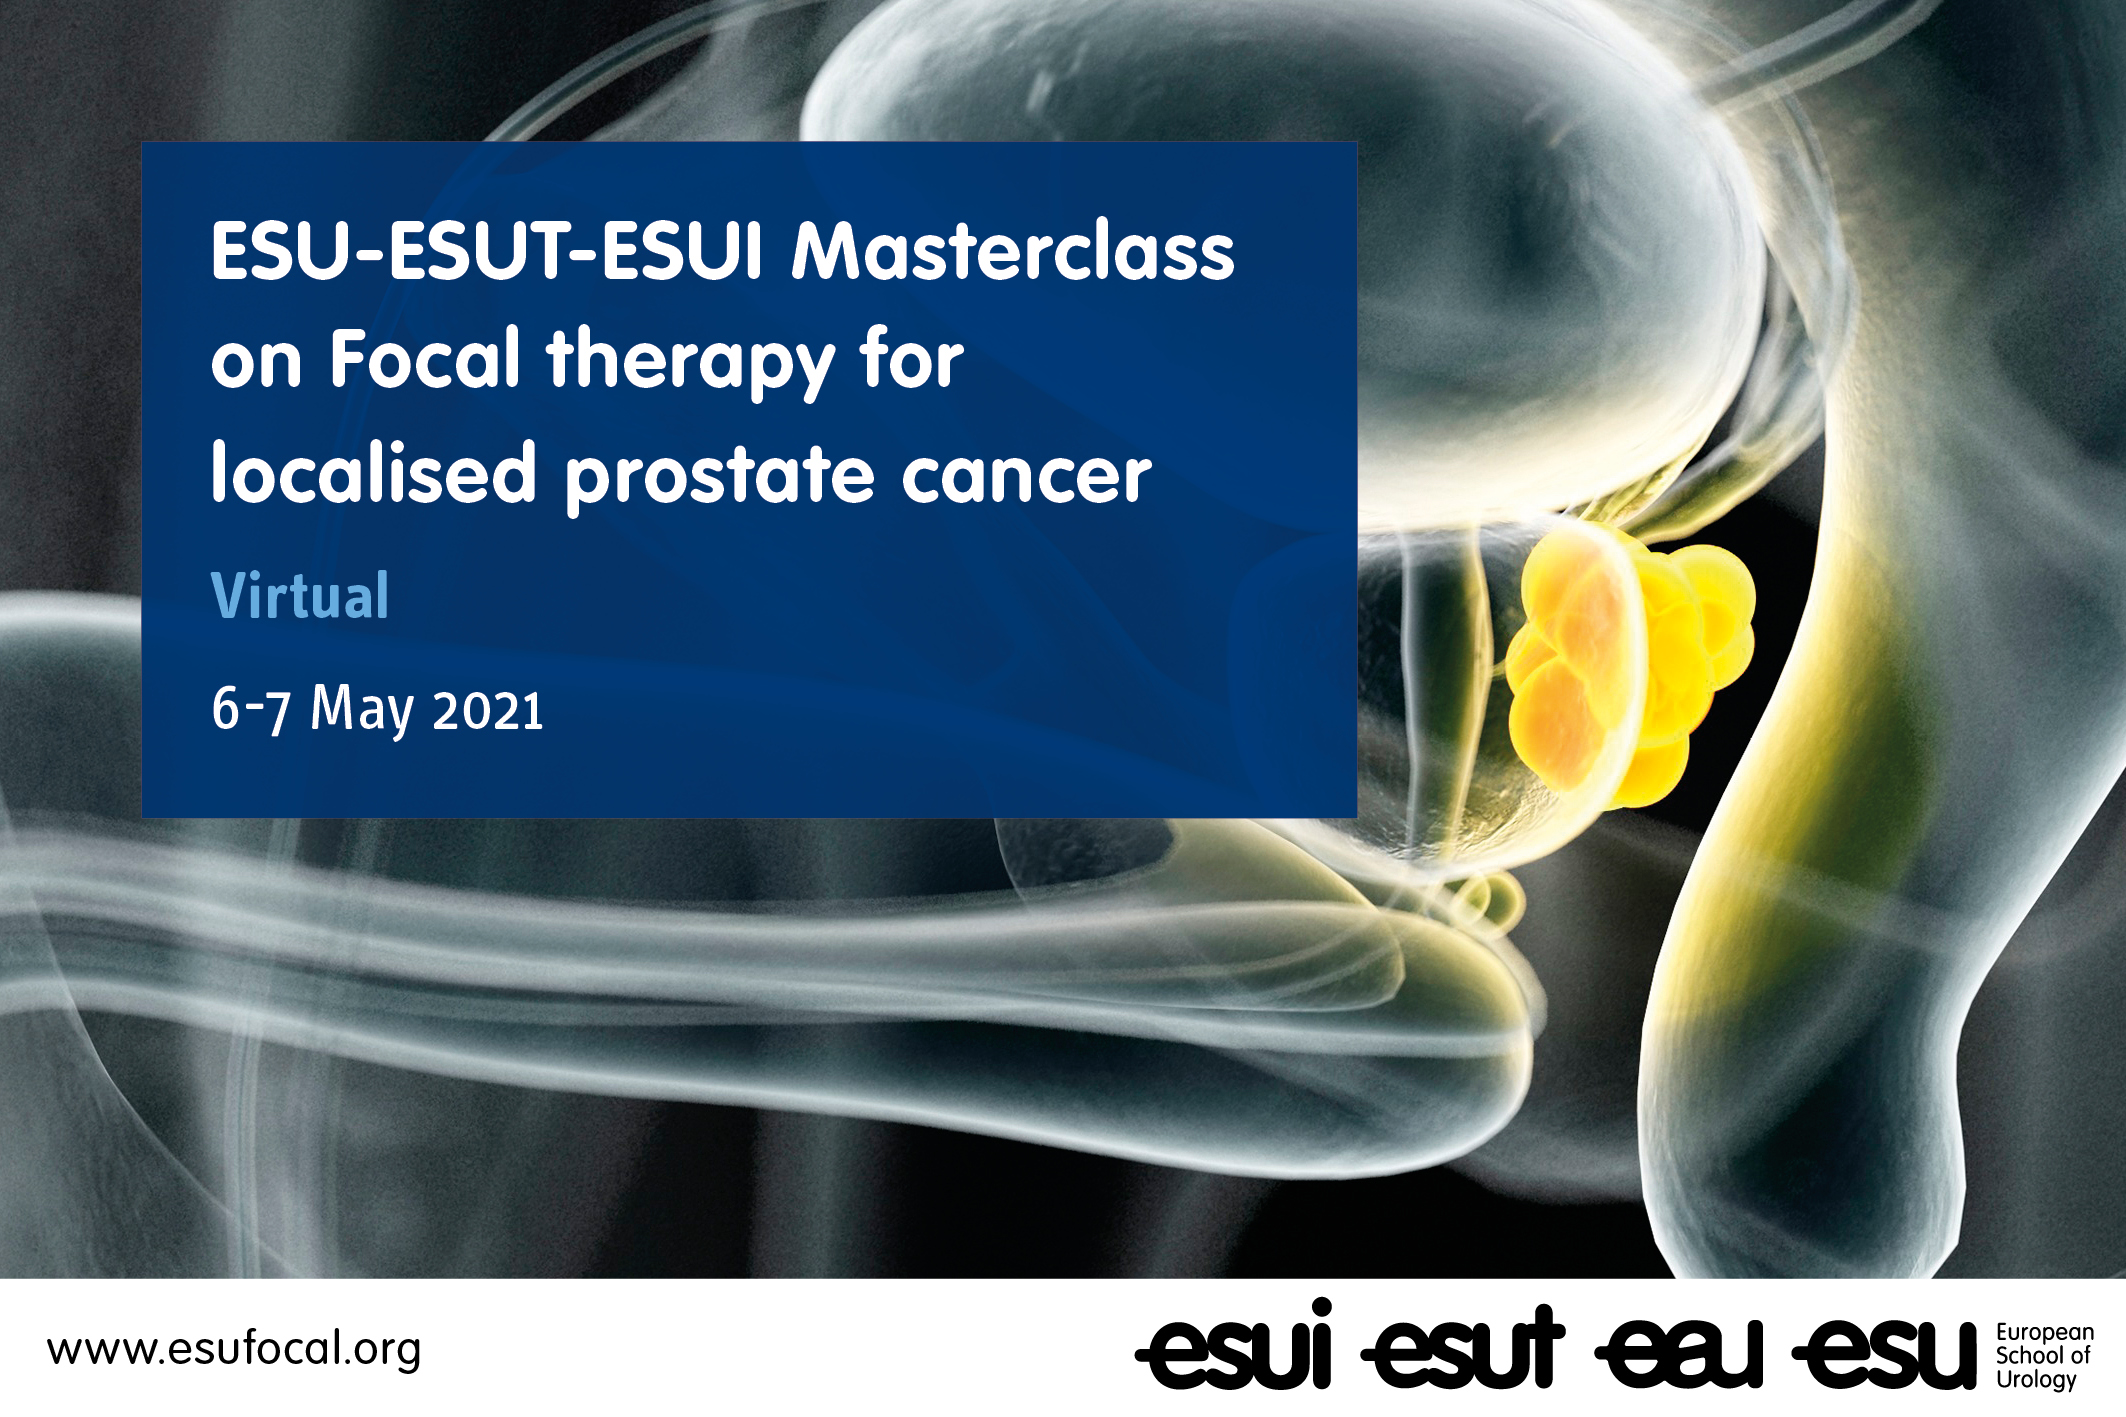 ESU-ESUT-ESUI Virtual Masterclass on Focal therapy for localised prostate cancer